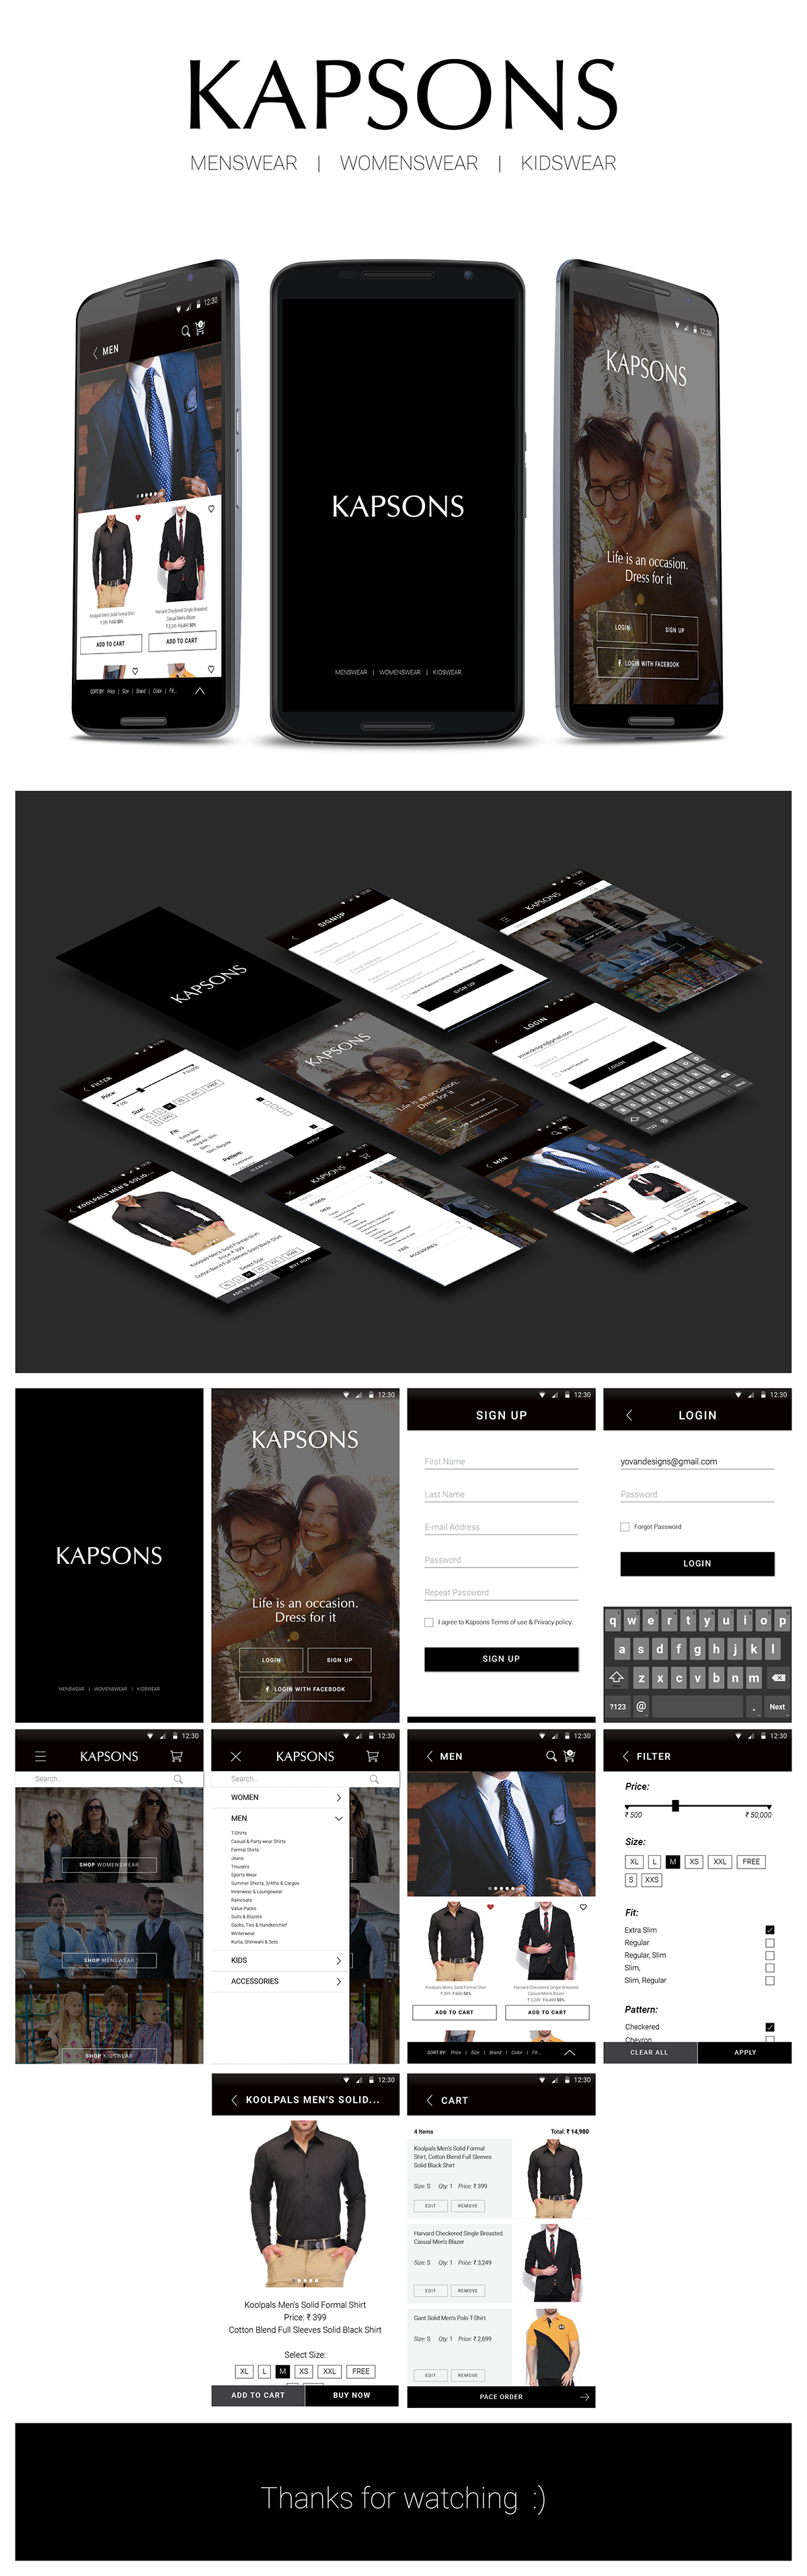 e-commerce Shopping Mobile app android iphone lifestyle Menswear womenswear accessories Appdesign kapsons user interface apple ux app design